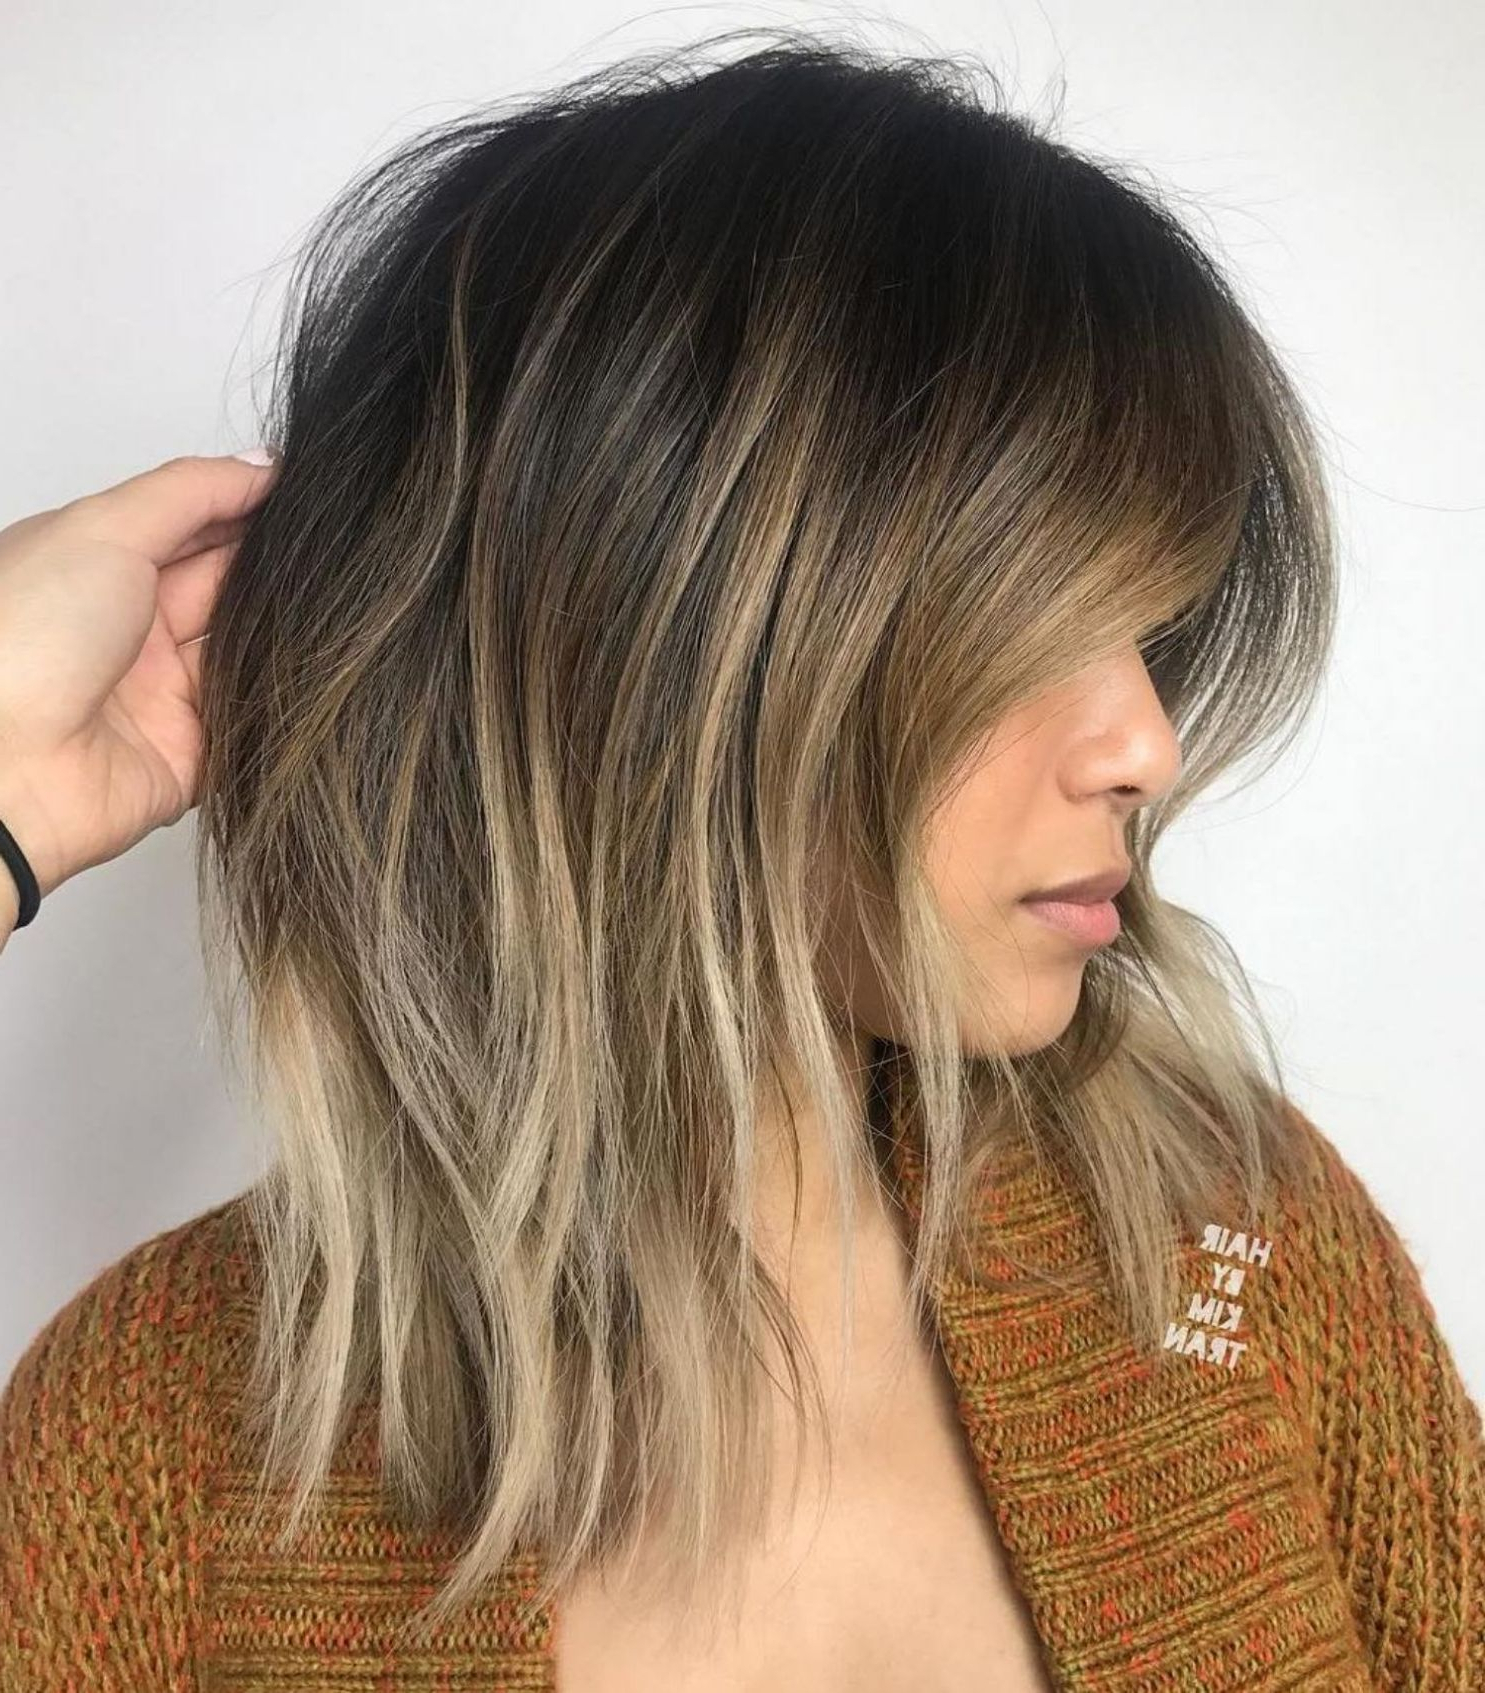 60 Fun And Flattering Medium Hairstyles For Women In 2019 In Disconnected Shaggy Brunette Bob Hairstyles (Gallery 6 of 20)